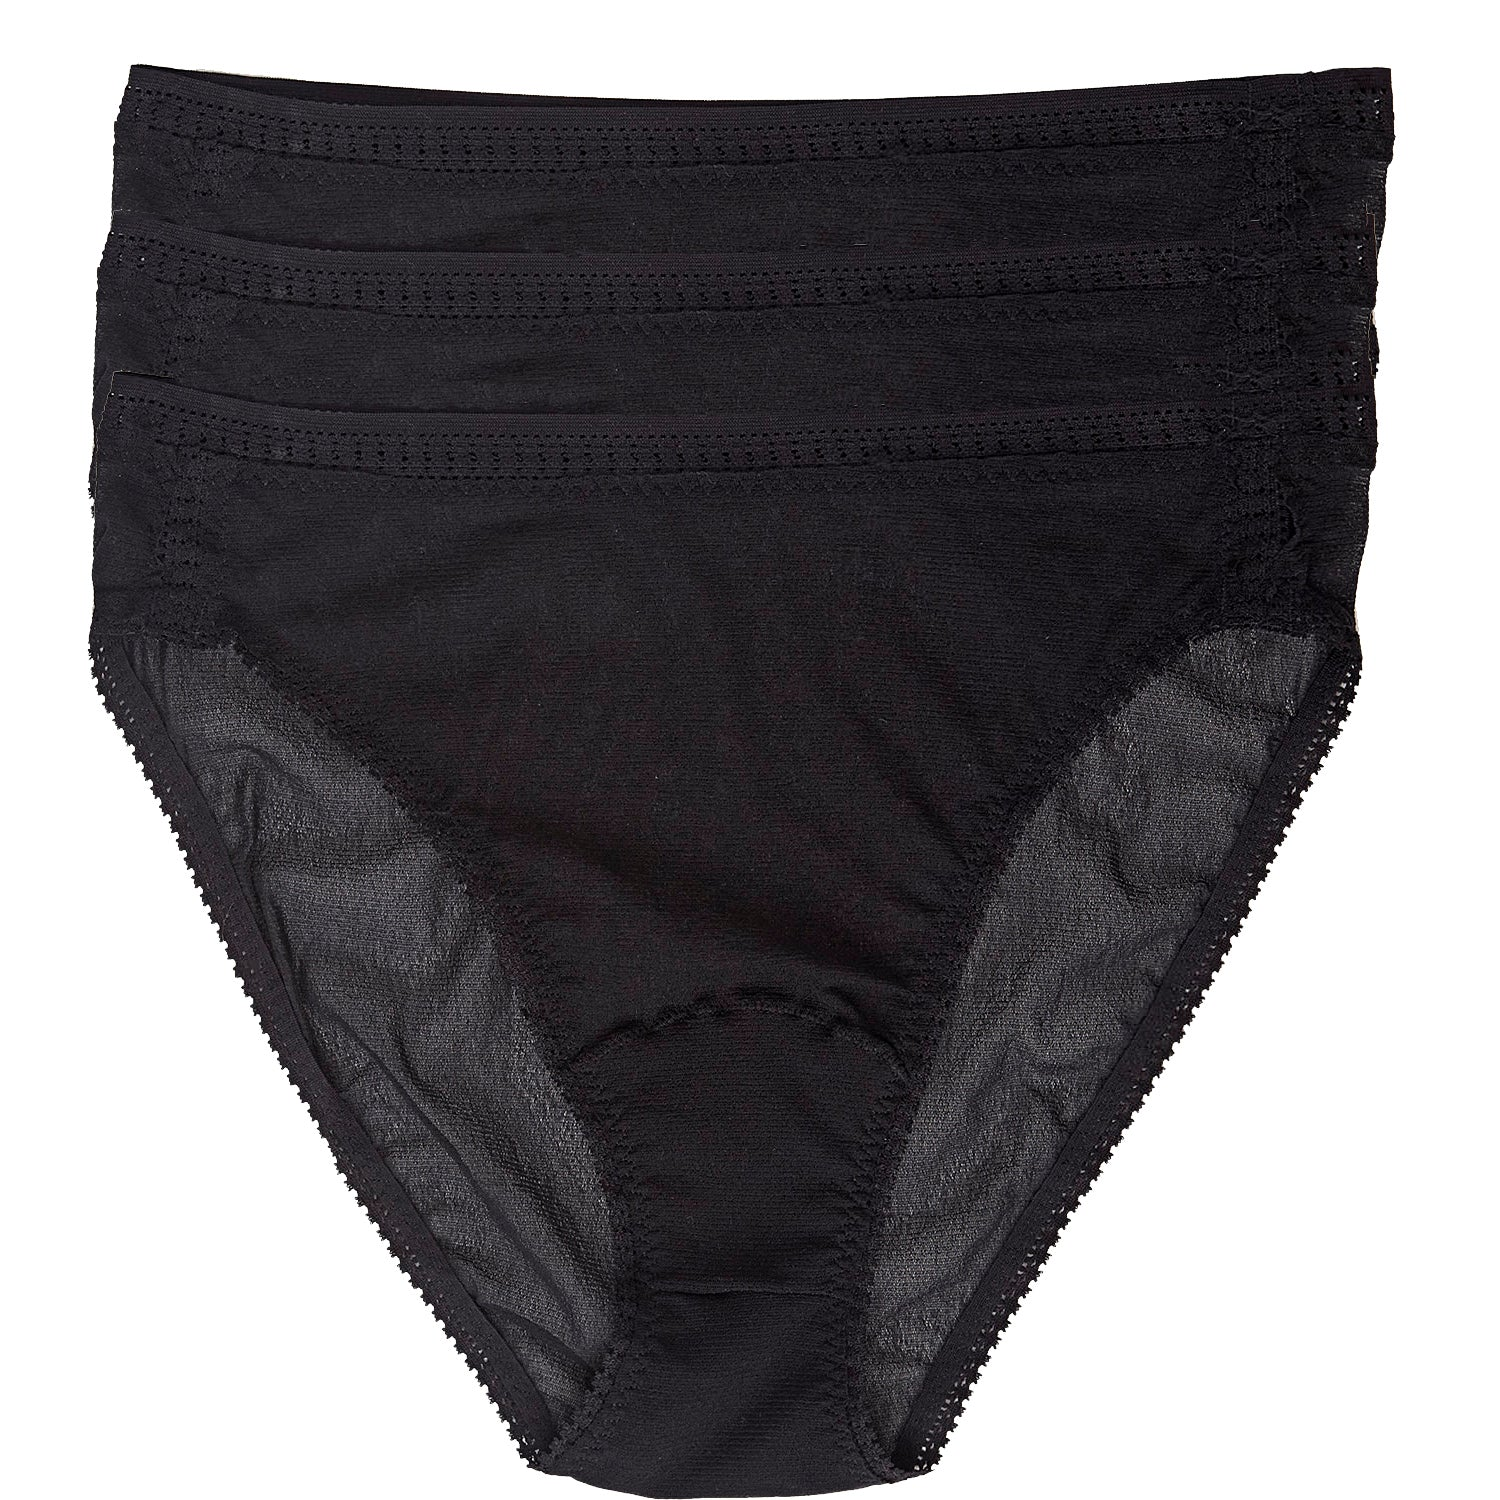 Gossamer Mesh Hi Cut Brief 3-Pack - Black